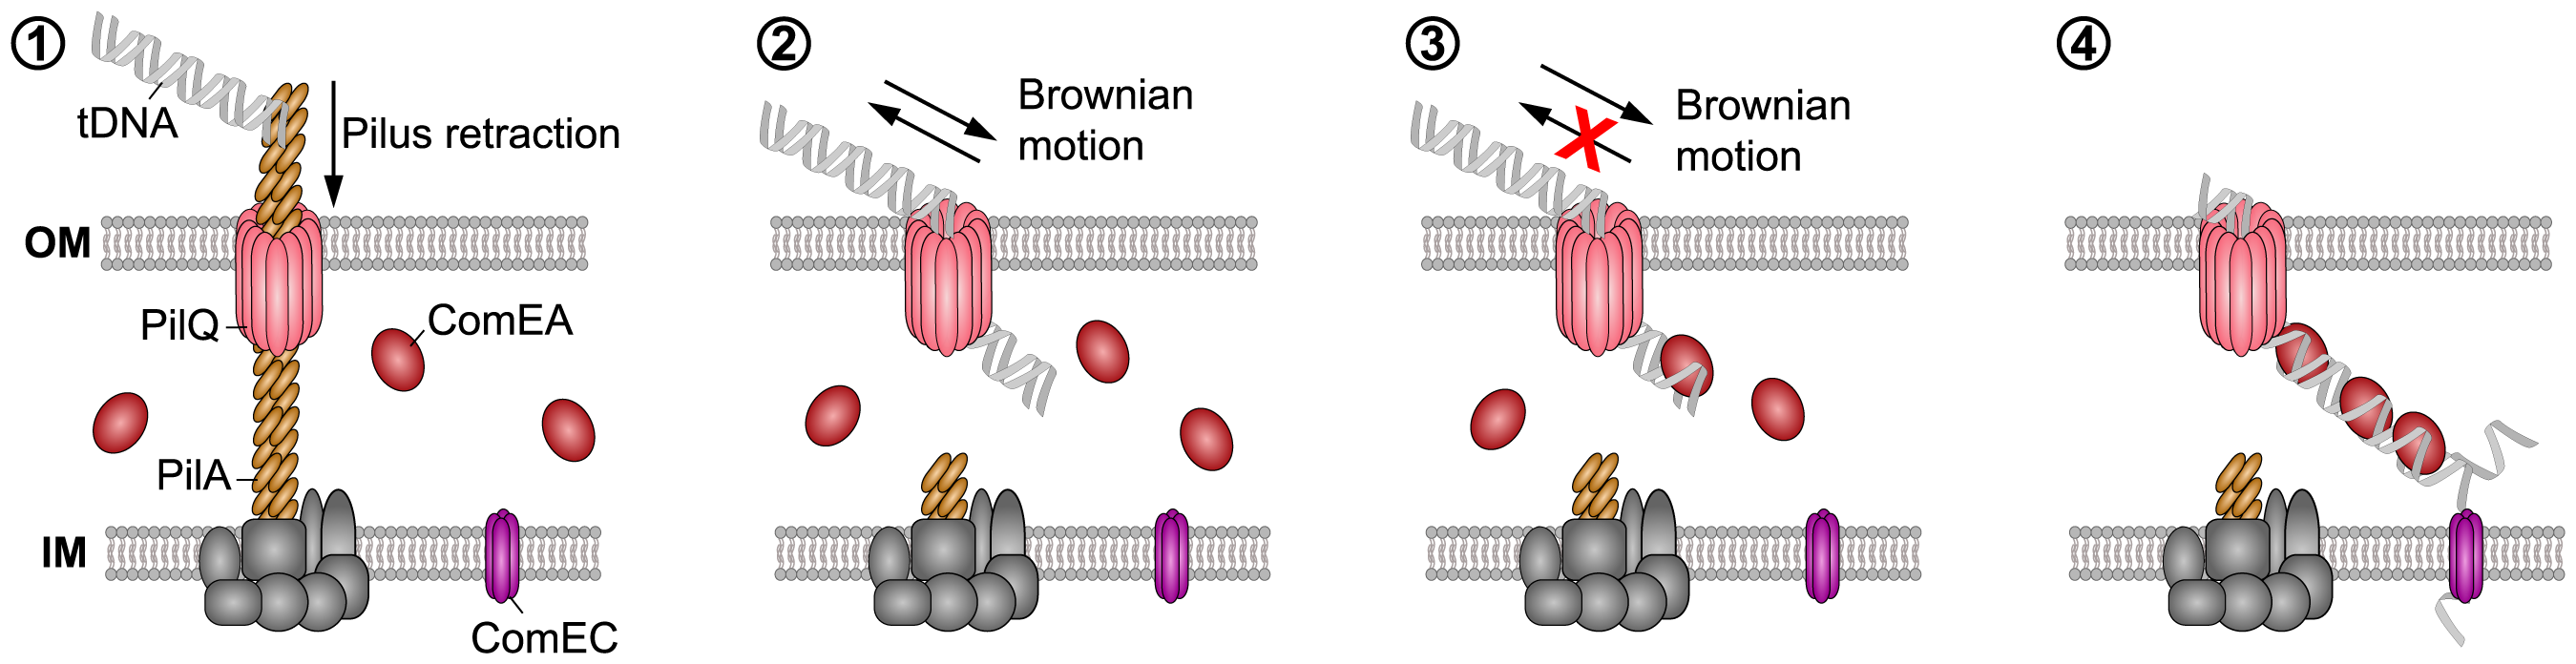 Working model of how DNA translocation across the outer membrane might occur in <i>V. cholerae</i>